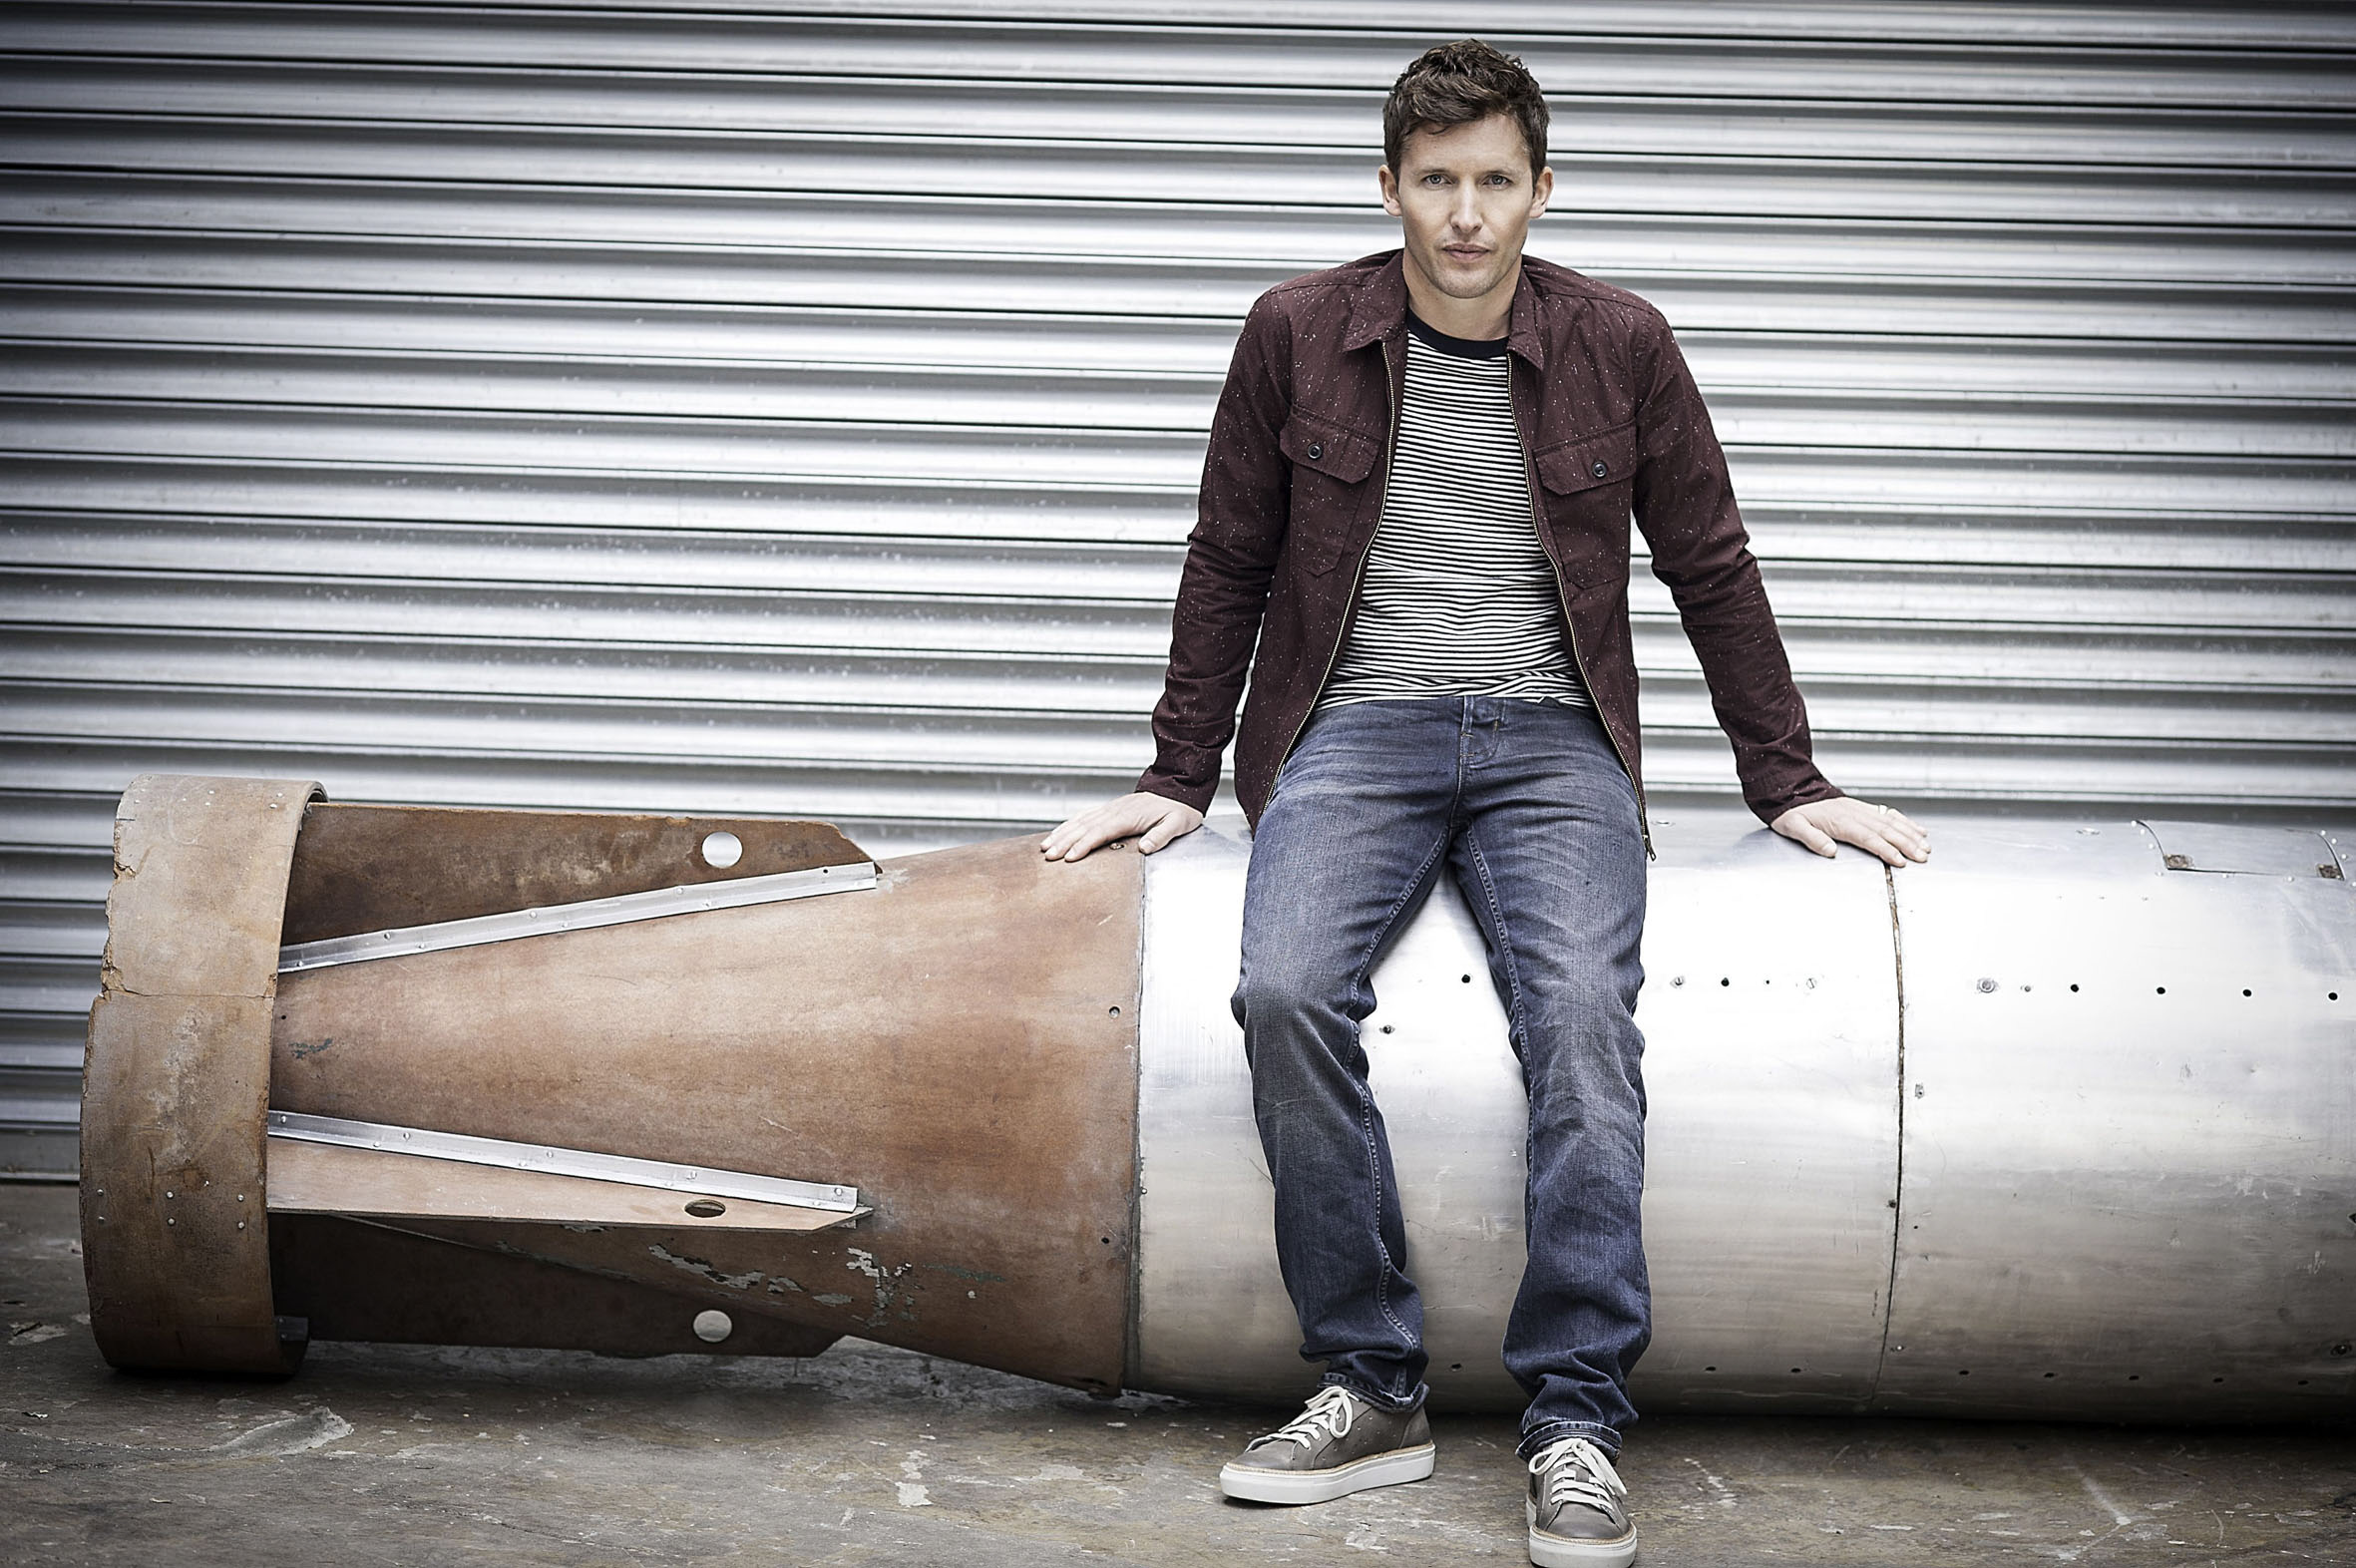 James Blunt, who will perform at Dalby Forest